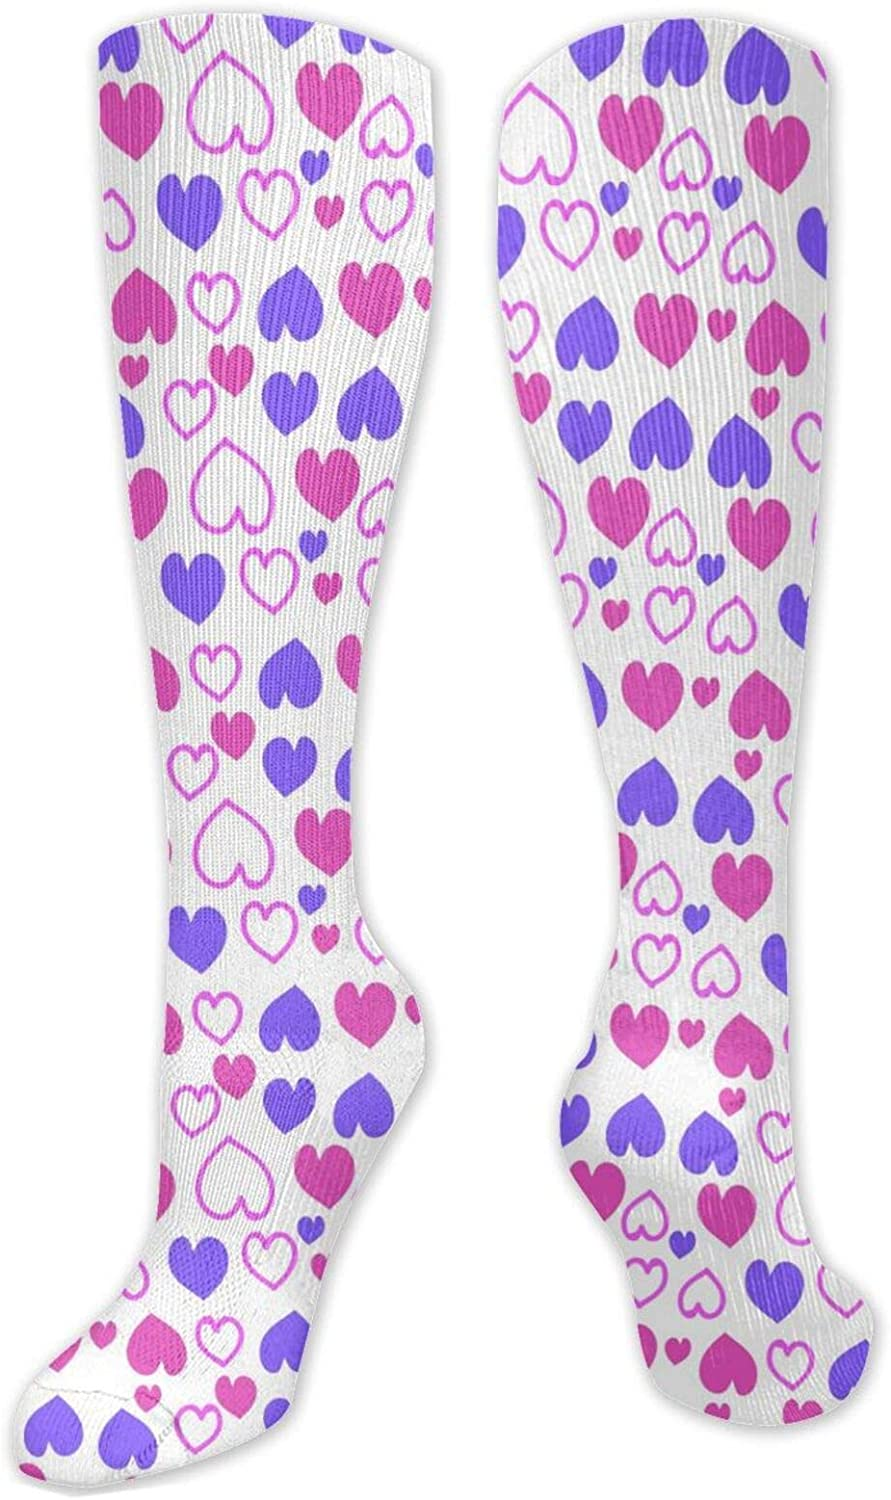 Purple And Pink Heart Knee High Socks Leg Warmer Dresses Long Boot Stockings For Womens Cosplay Daily Wear